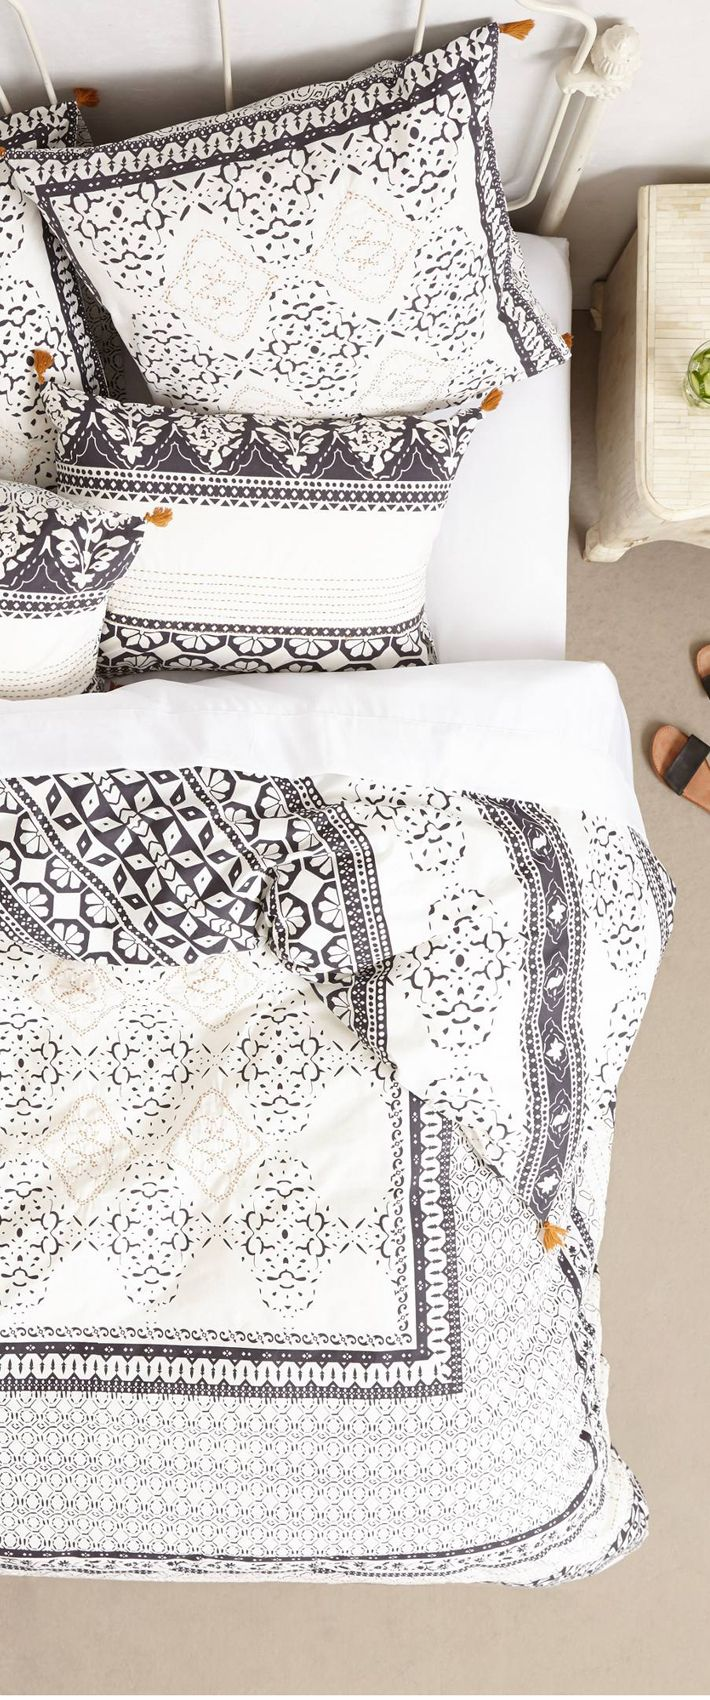 Anthropologie bedding - Anthropologie Bedspreads Are Wonderful And Magical And I Would Sell My Soul For One